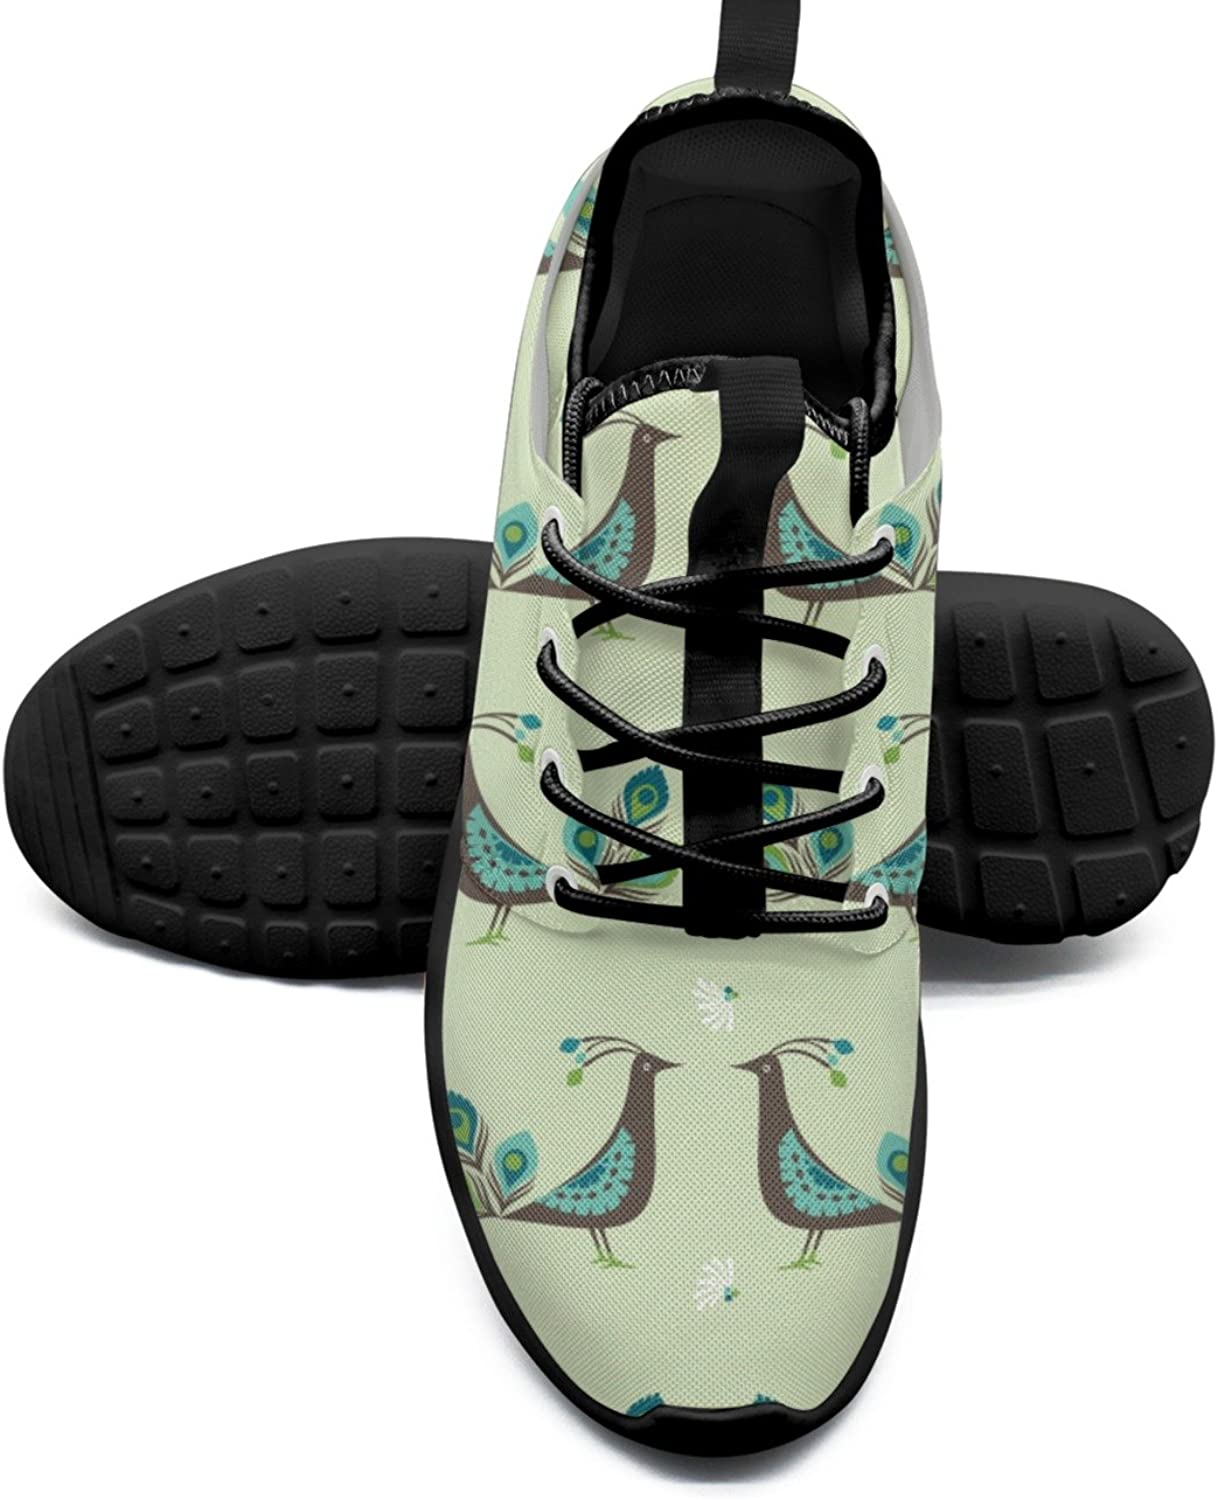 Women's Fashion Lightweight Volleyball Sneakers Cute Cartoon Peacock Birds-01 Stylish Boat shoes